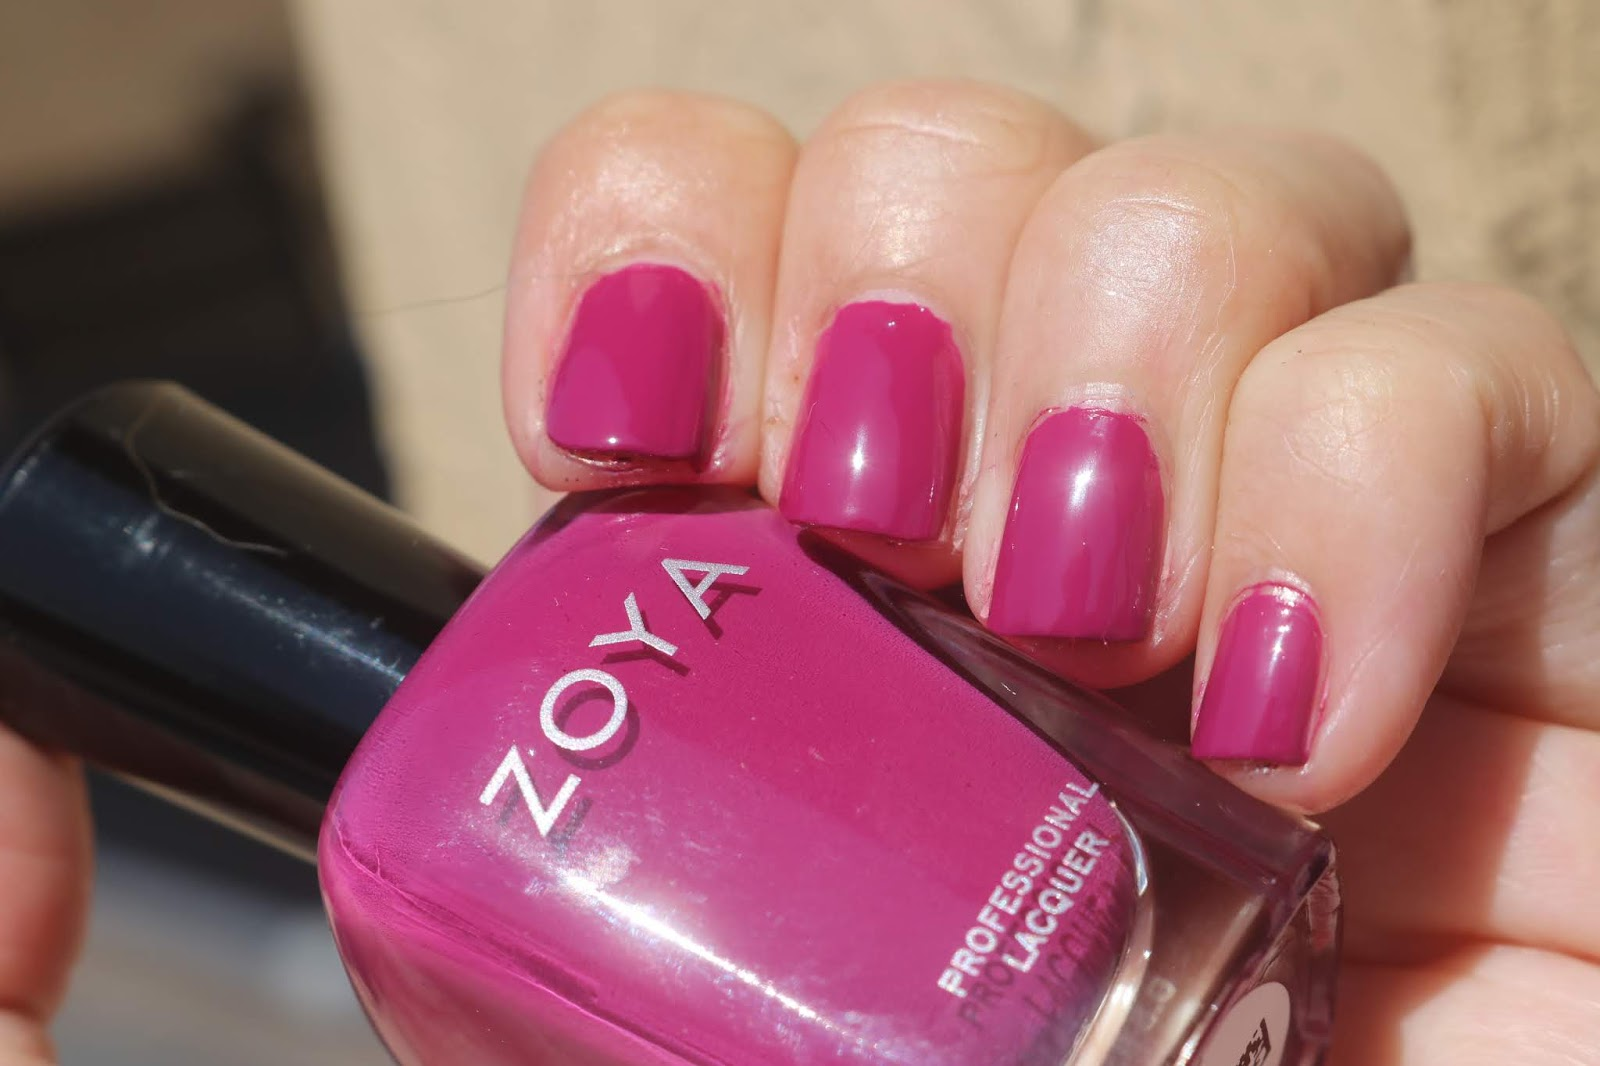 Zoya Donnie